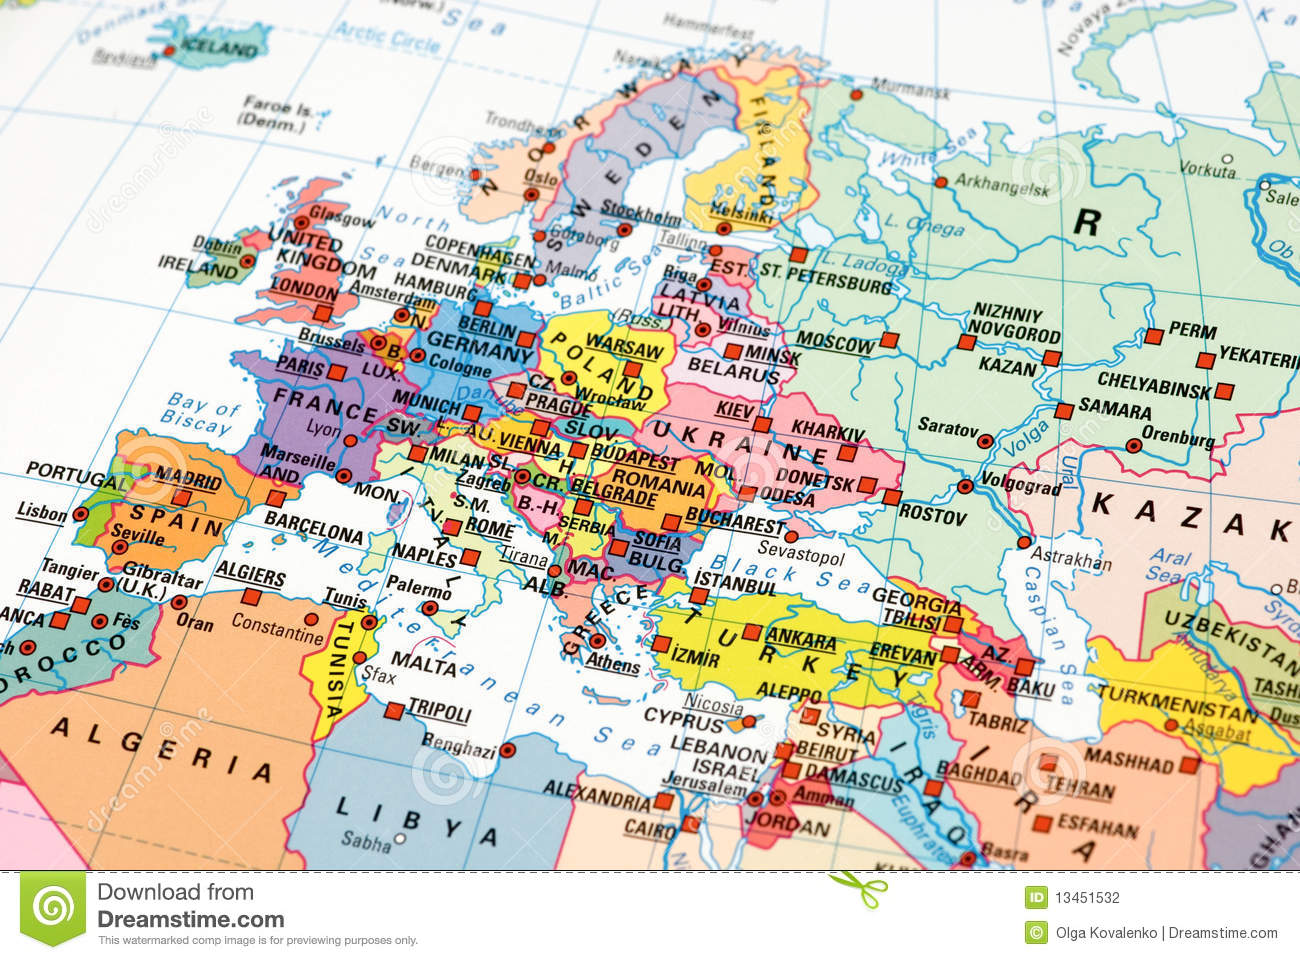 europe ccot Alaine coffey p2 western europe 600-1450 ccot the medieval period of western european history, ranging from approximately 600 to 1450 ce, witnessed drastic changes in the intellectual, economic and technological life of the region.